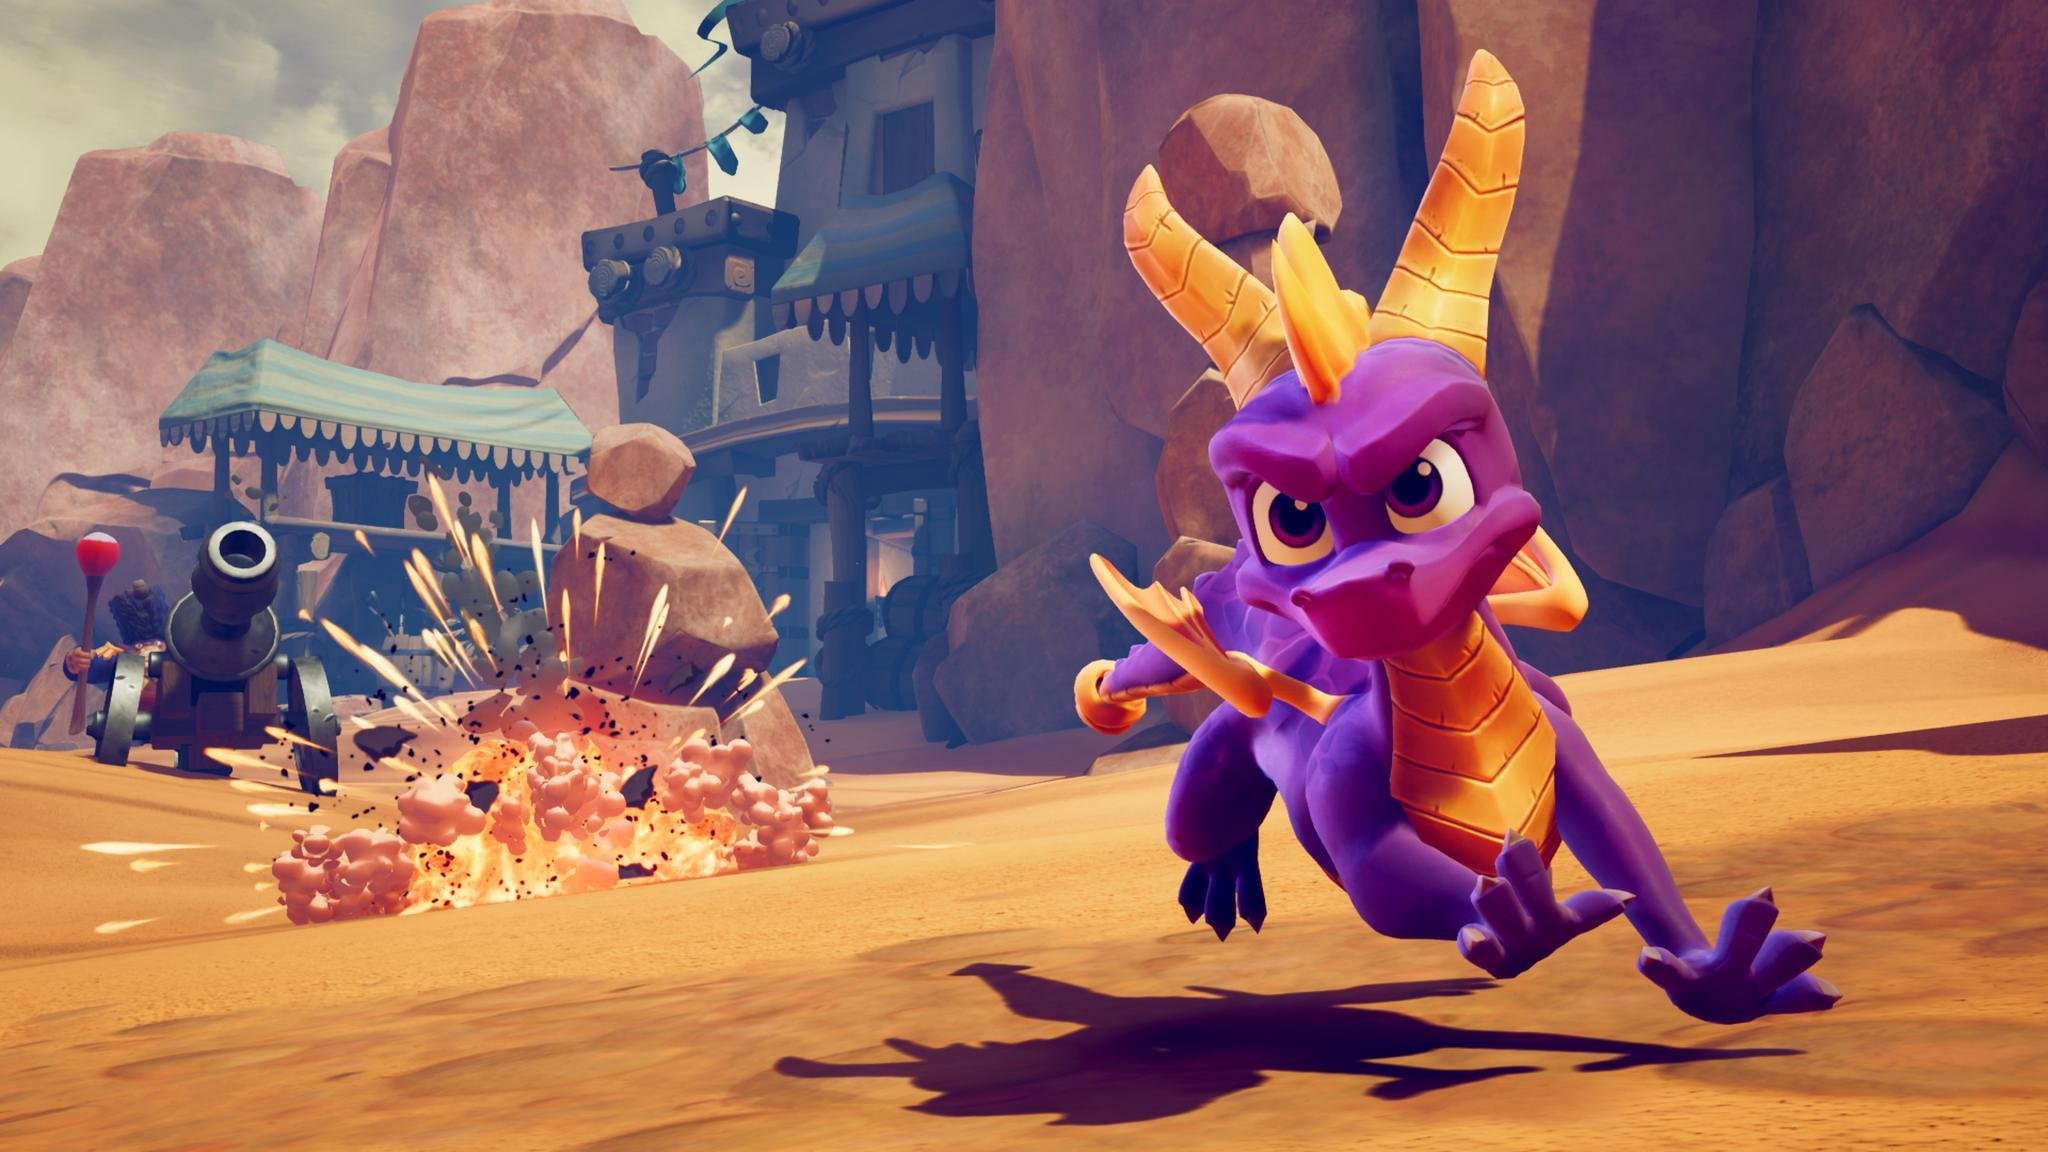 screenshot of Spyro reignited trilogy